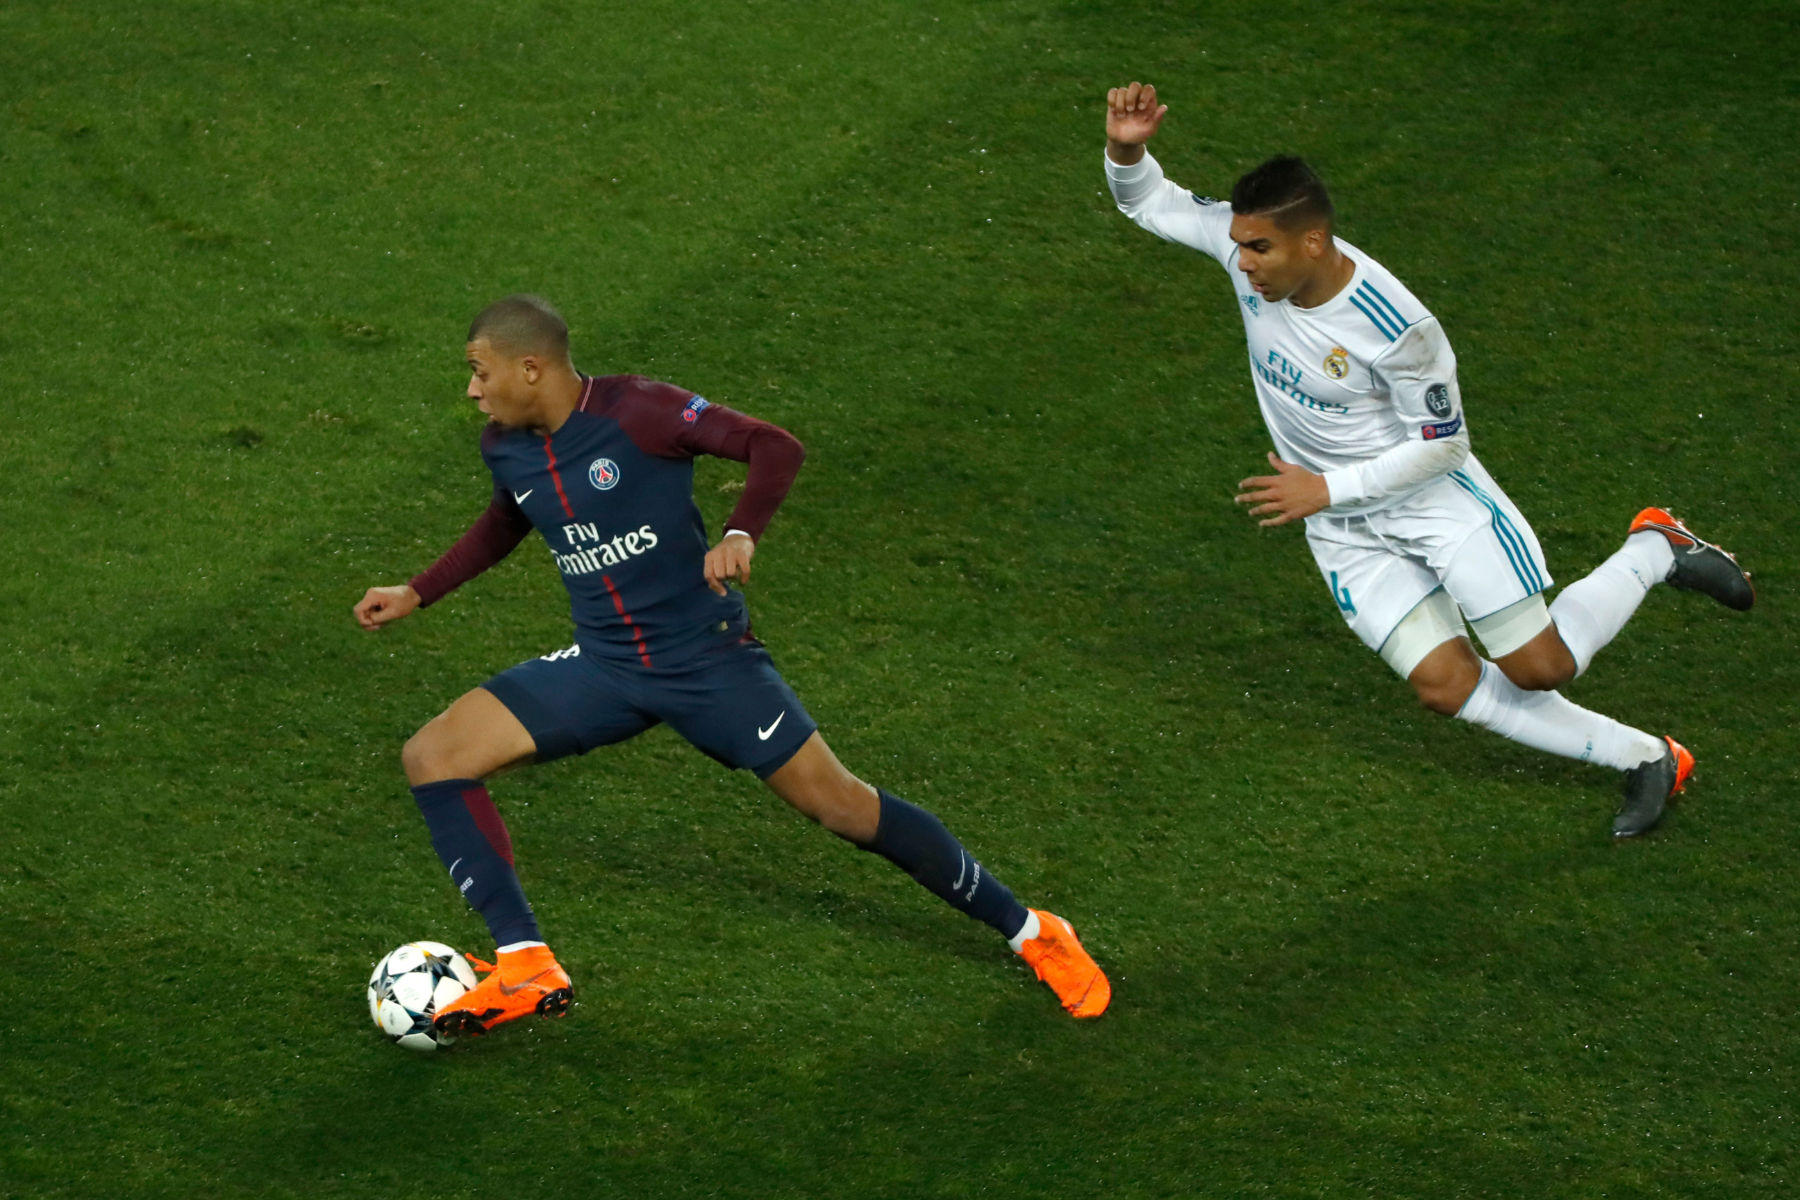 Opinion Mbappe S Dream Of Playing For Real Madrid Could Turn Into A Nightmare Psg Talk